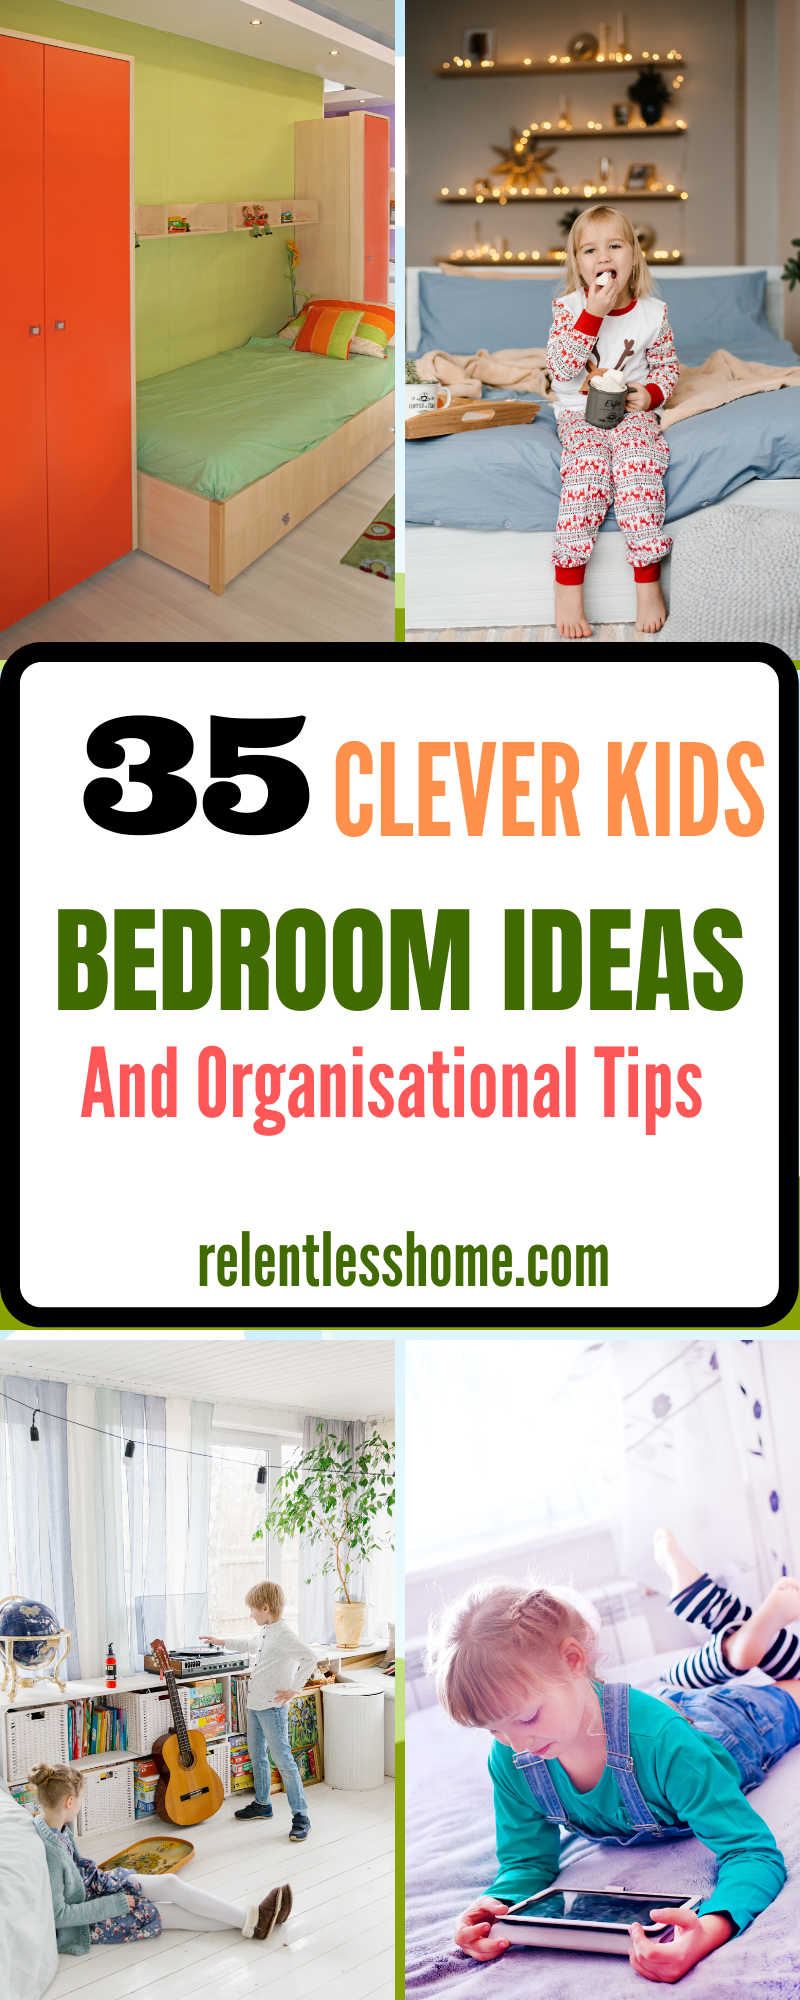 35 Clever Kids Bedroom Ideas And Organisational Tips